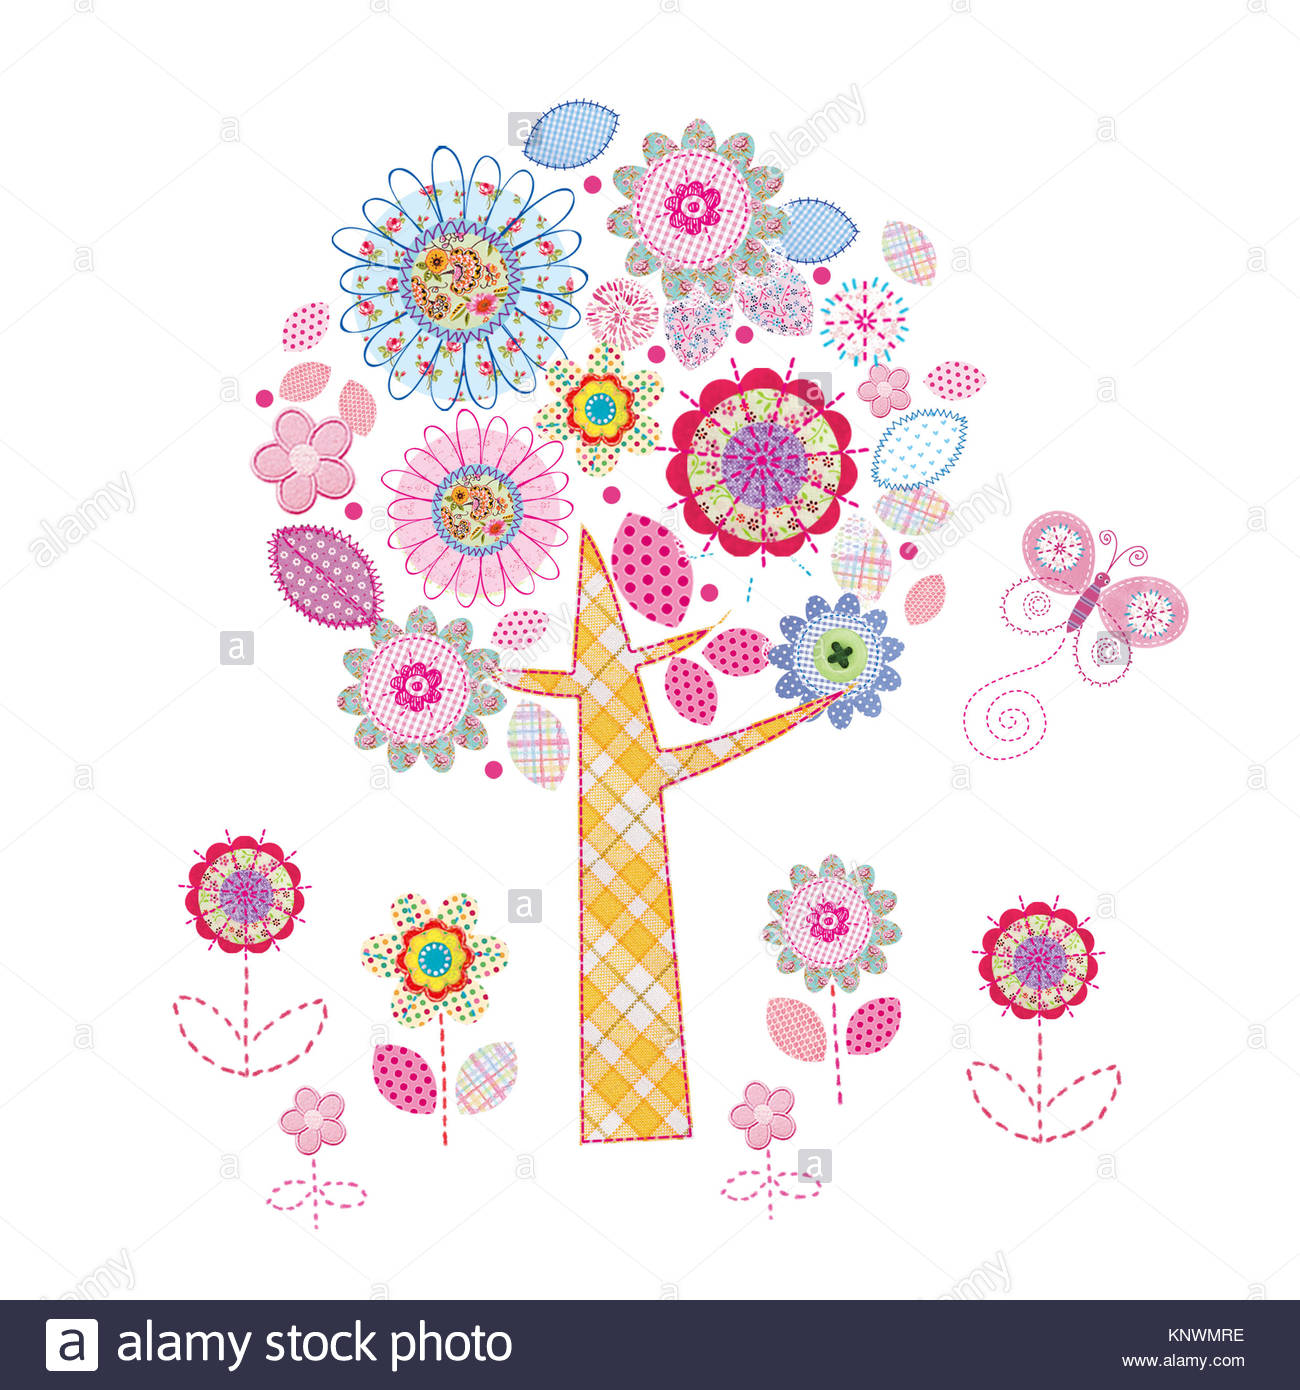 Collage style flowers and trees - Stock Image